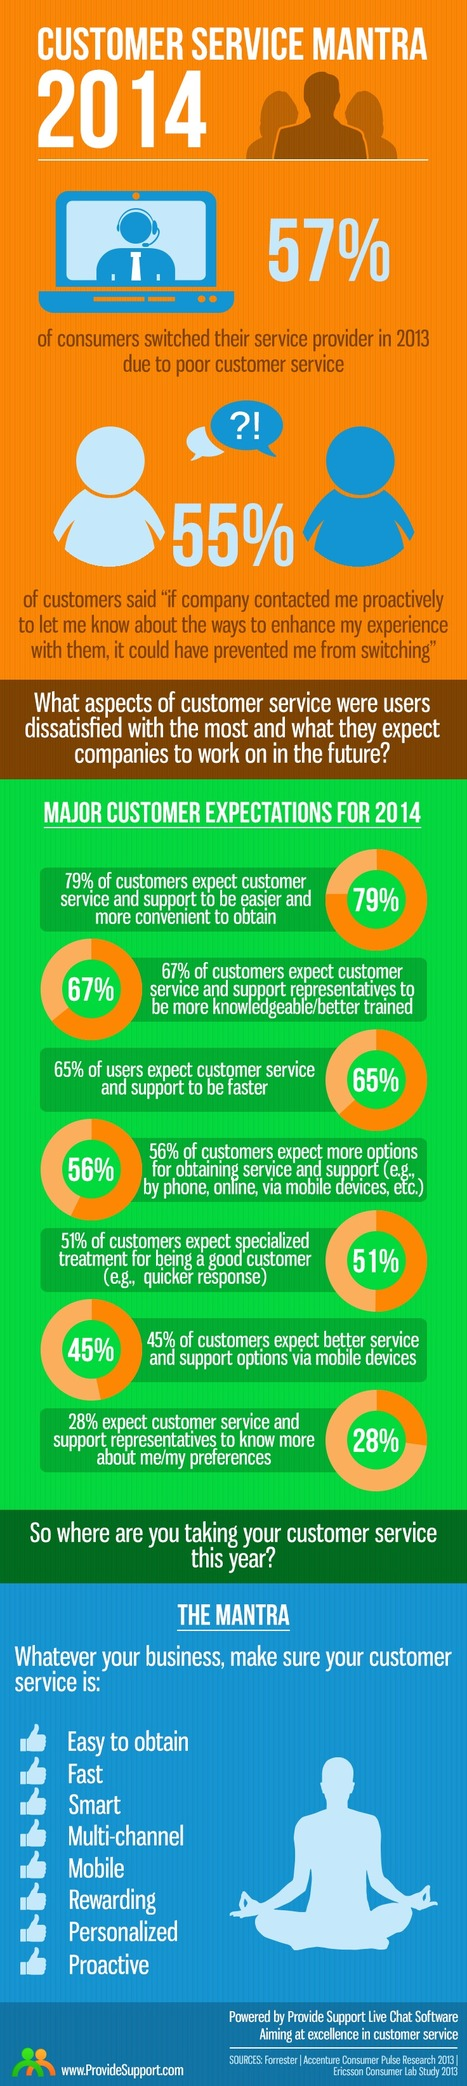 Customer Service Mantra 2014 [Inforgraphic] | Online customer care insights | Scoop.it